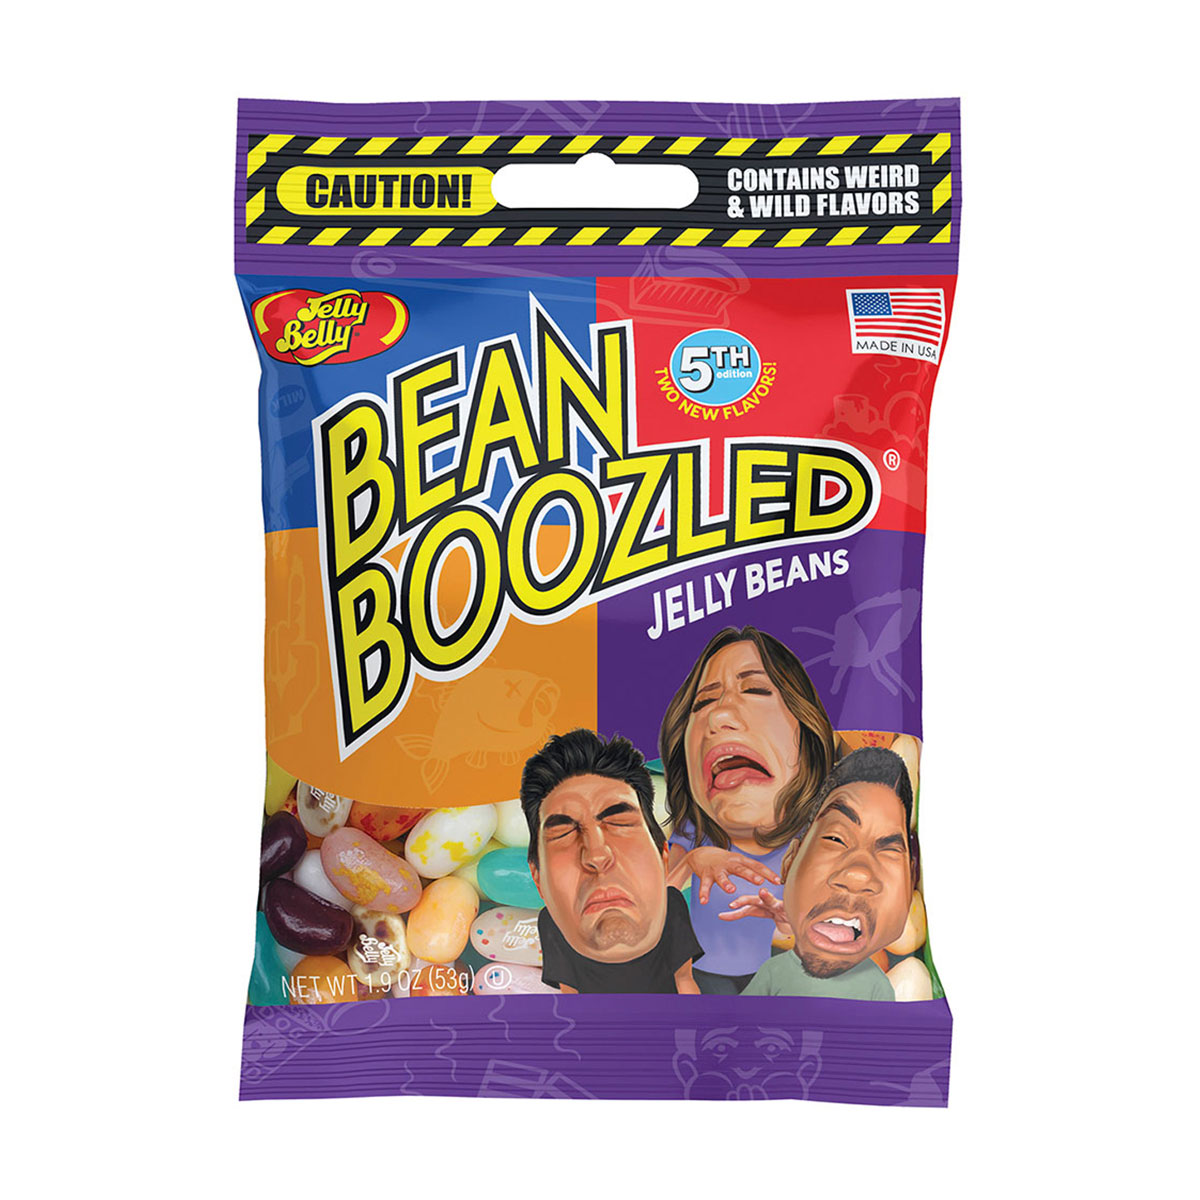 BeanBoozled Jelly Beans 1.9 oz bag (5th edition)